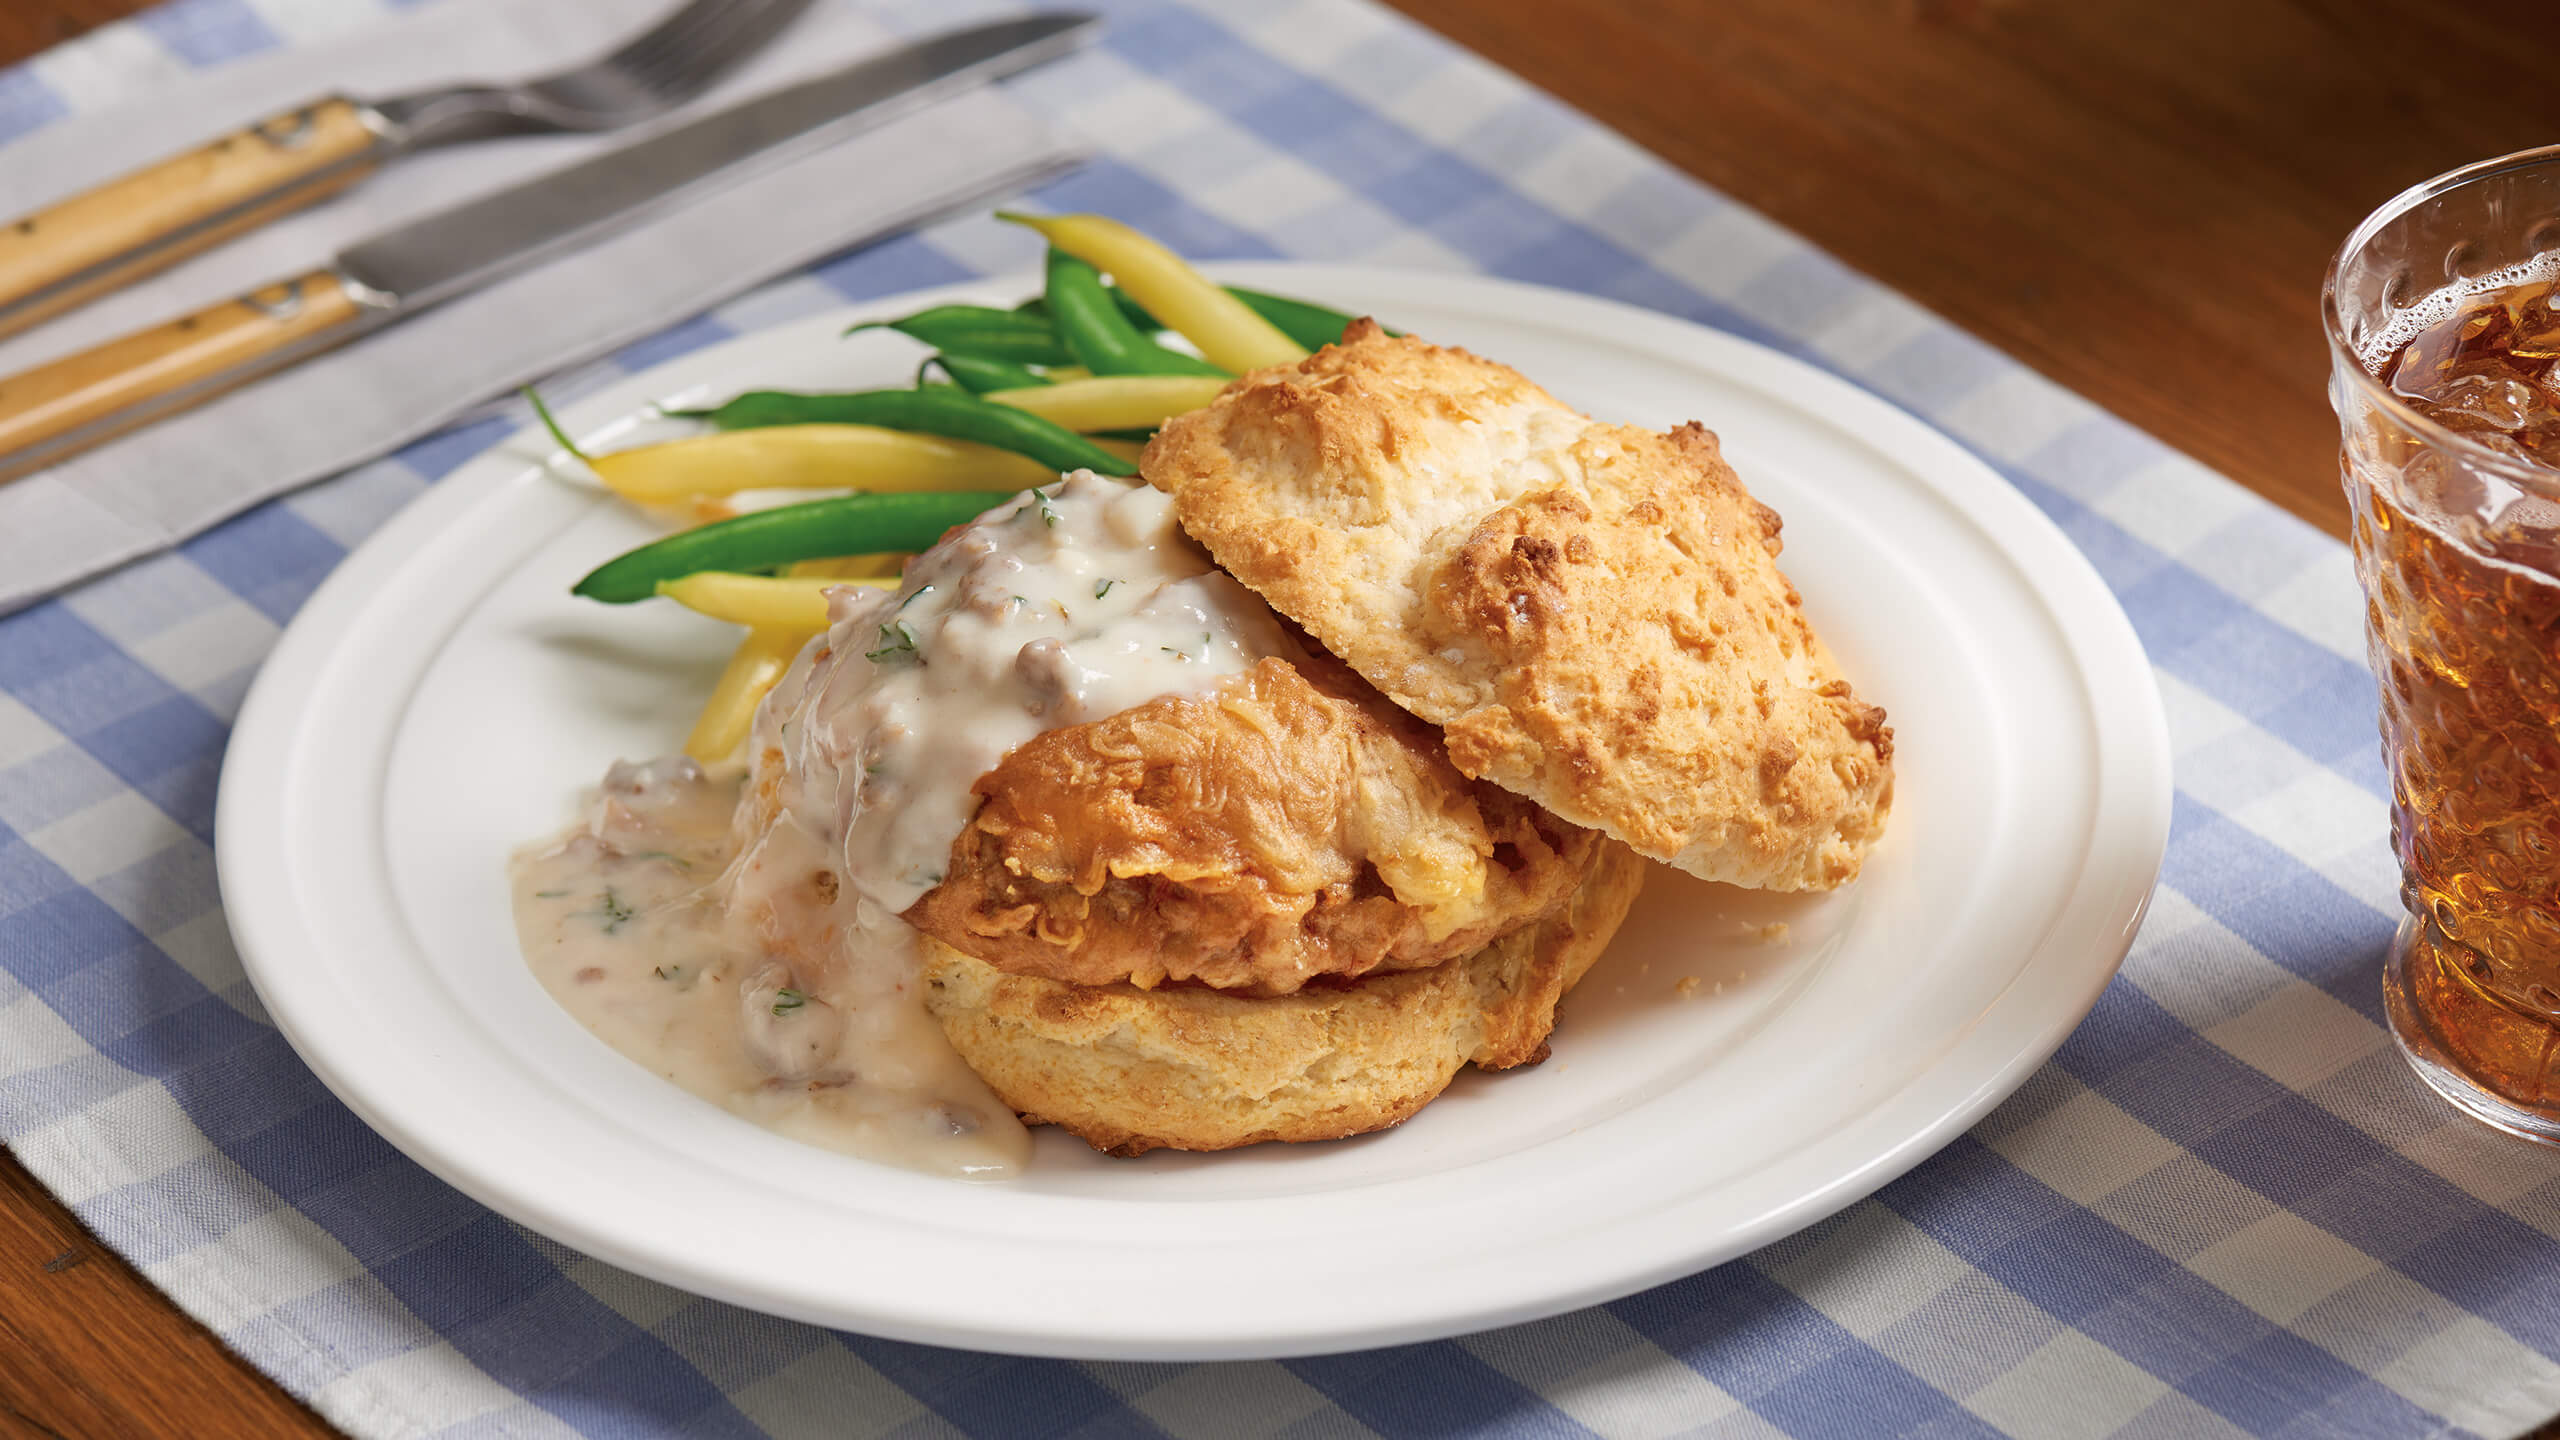 Chicken-Fried Steak Burger with Spicy Sausage Gravy on a Biscuit